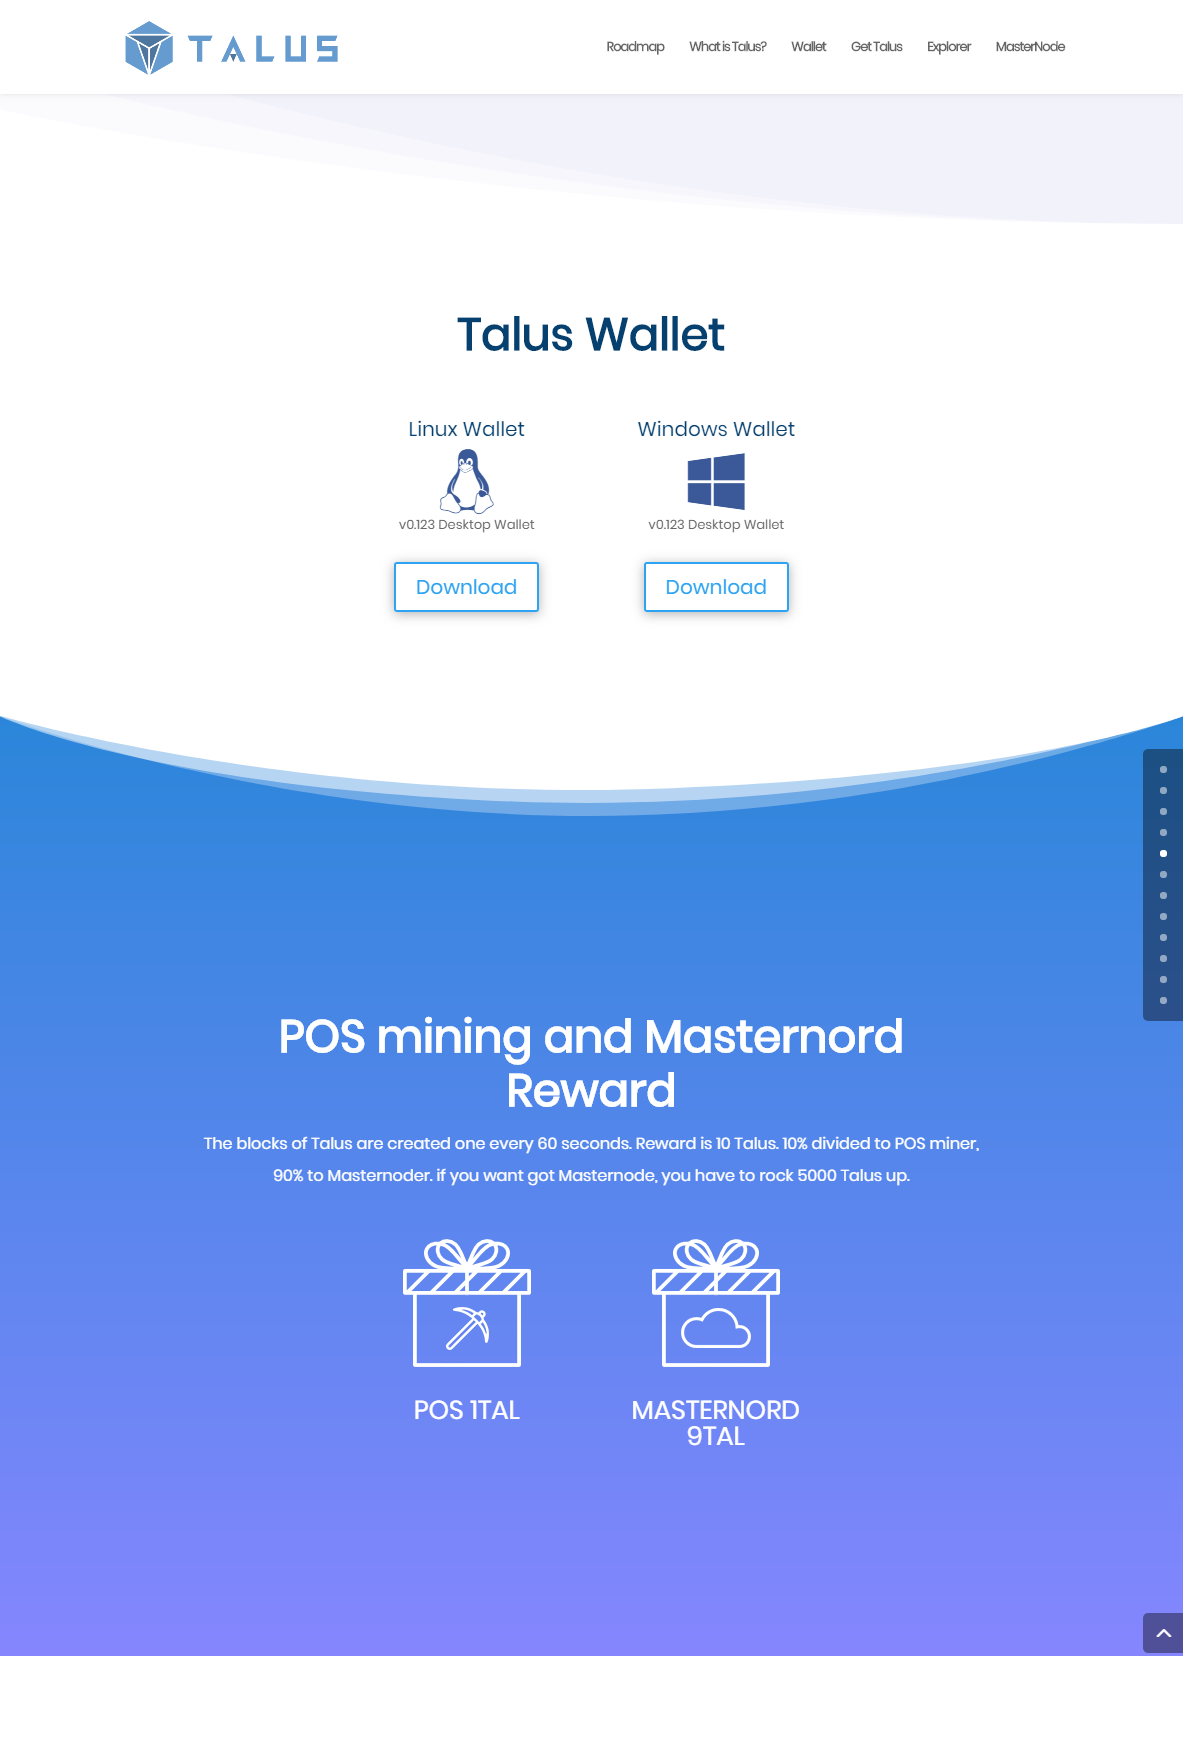 TALUS Decentralize exchange3